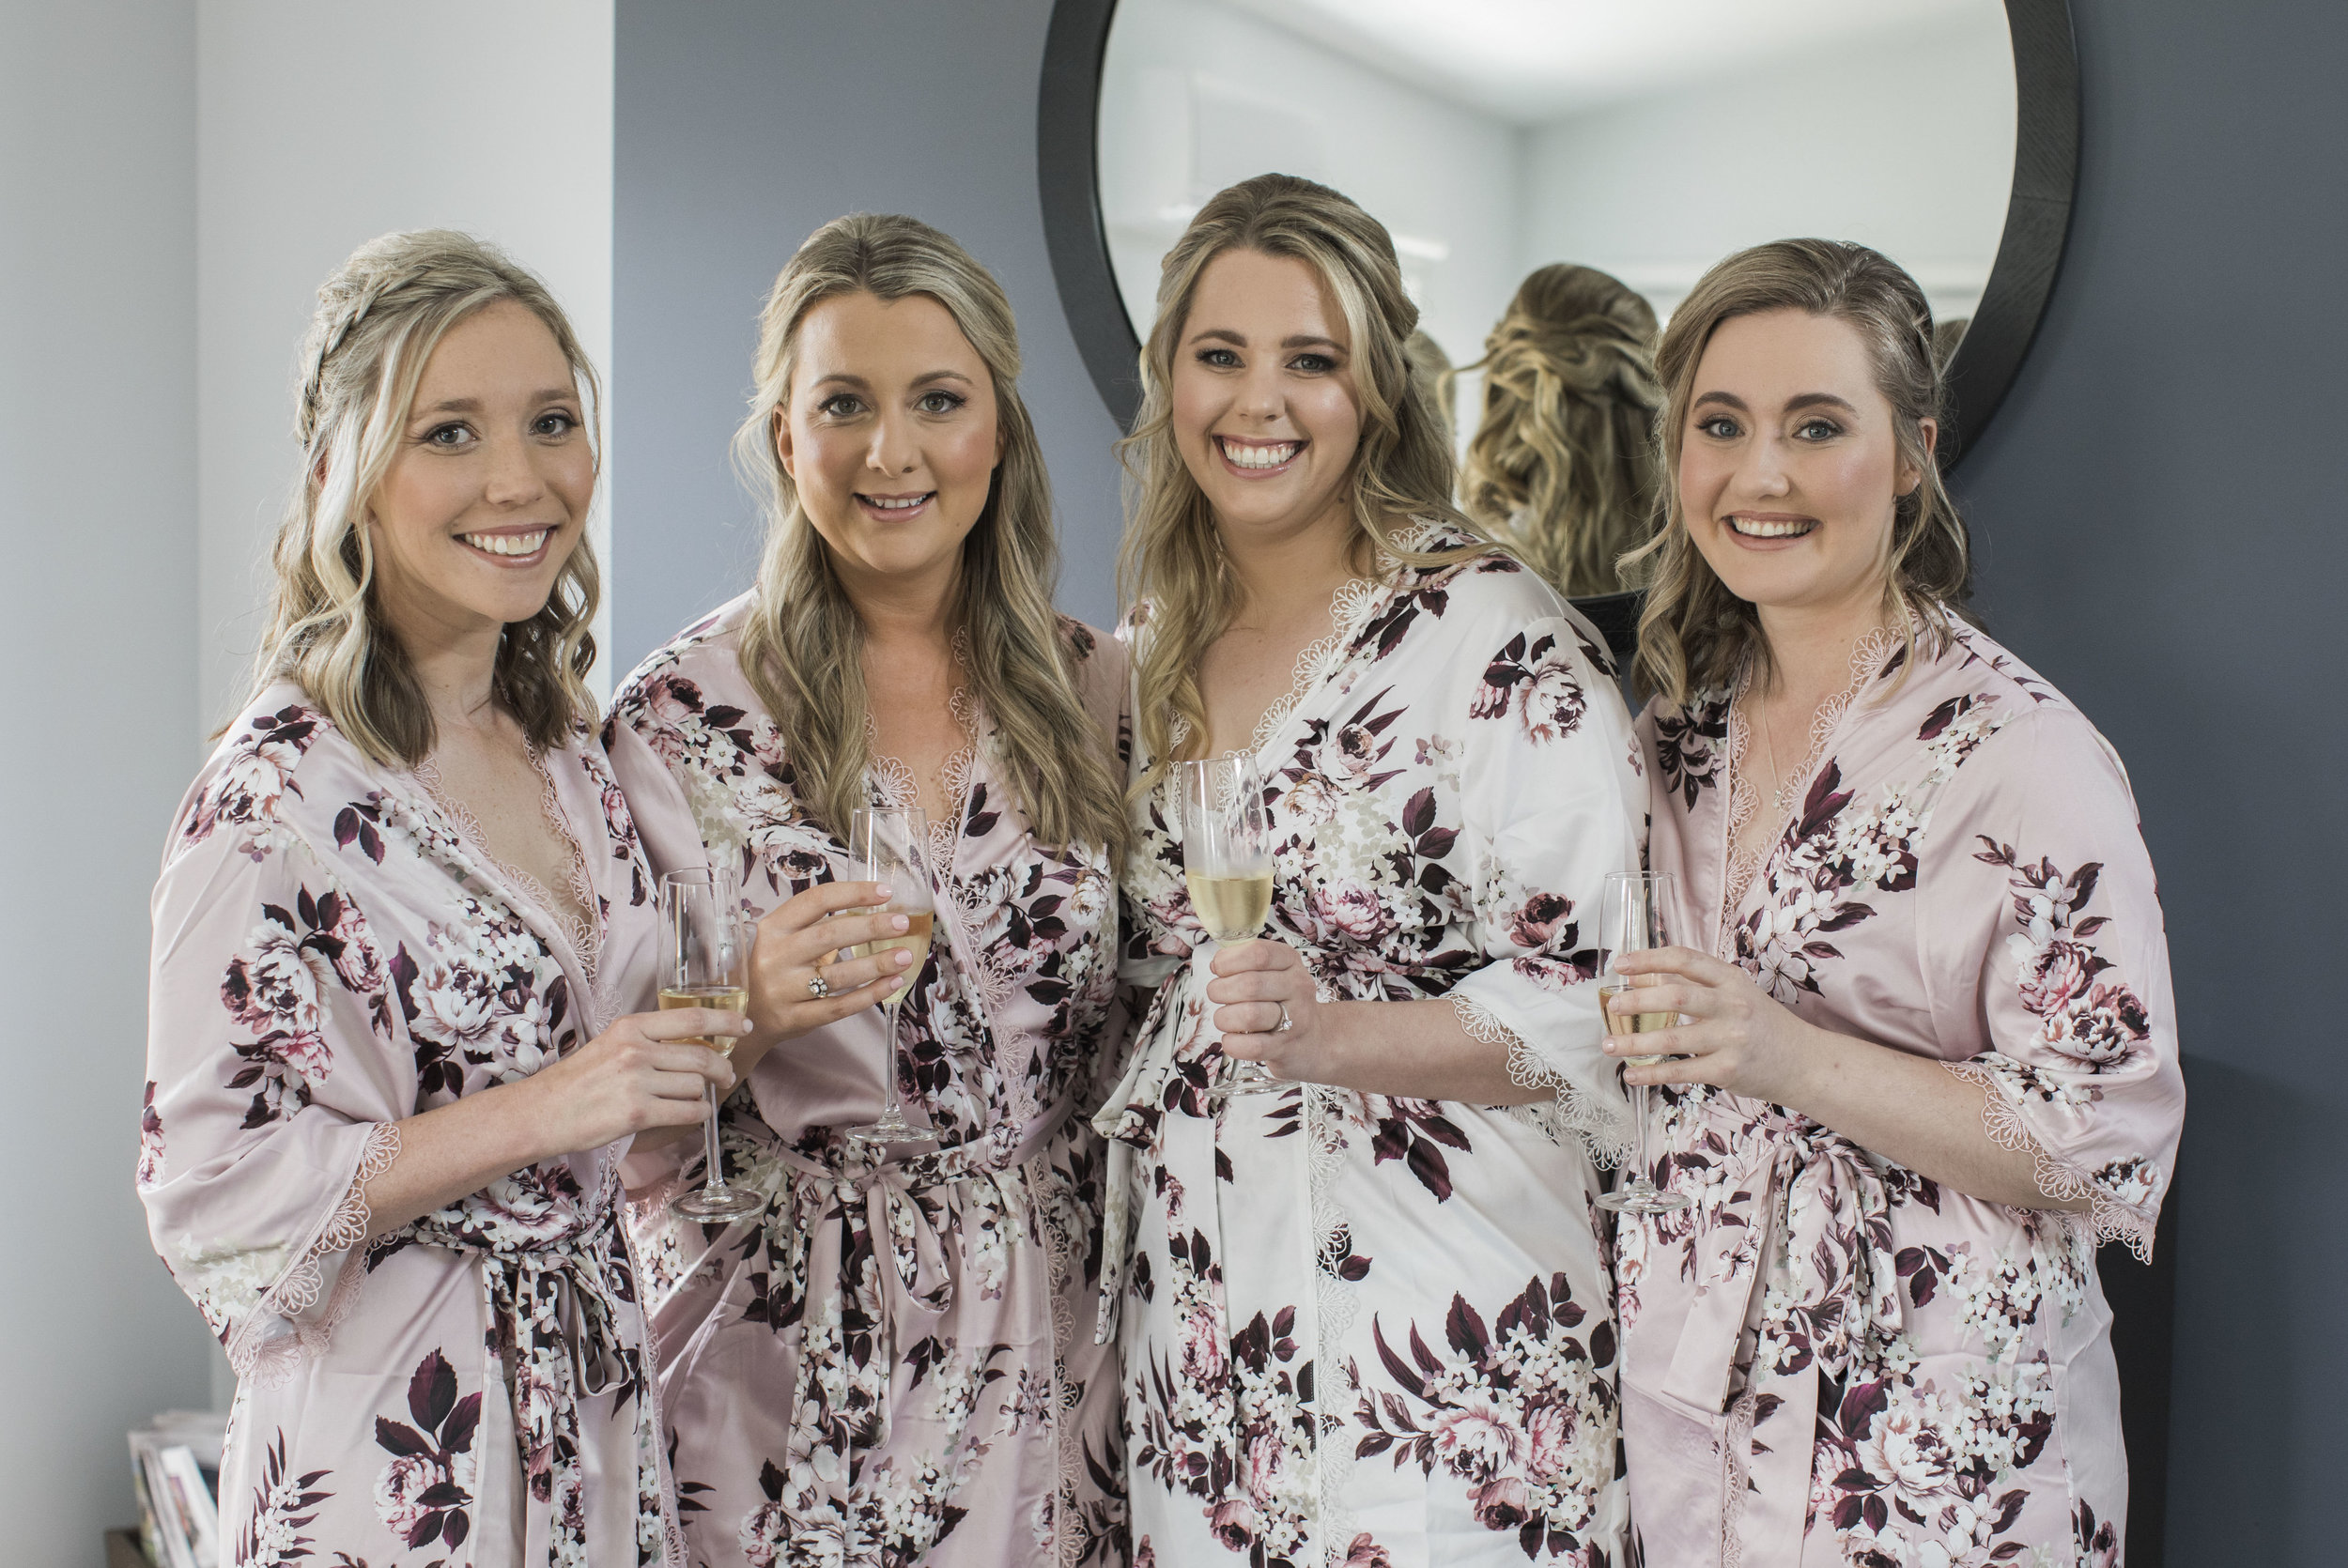 jack rabbit vineyard, jack rabbit weddings, love by shae, wedding photographer, echuca, moama, bendigo, geelong